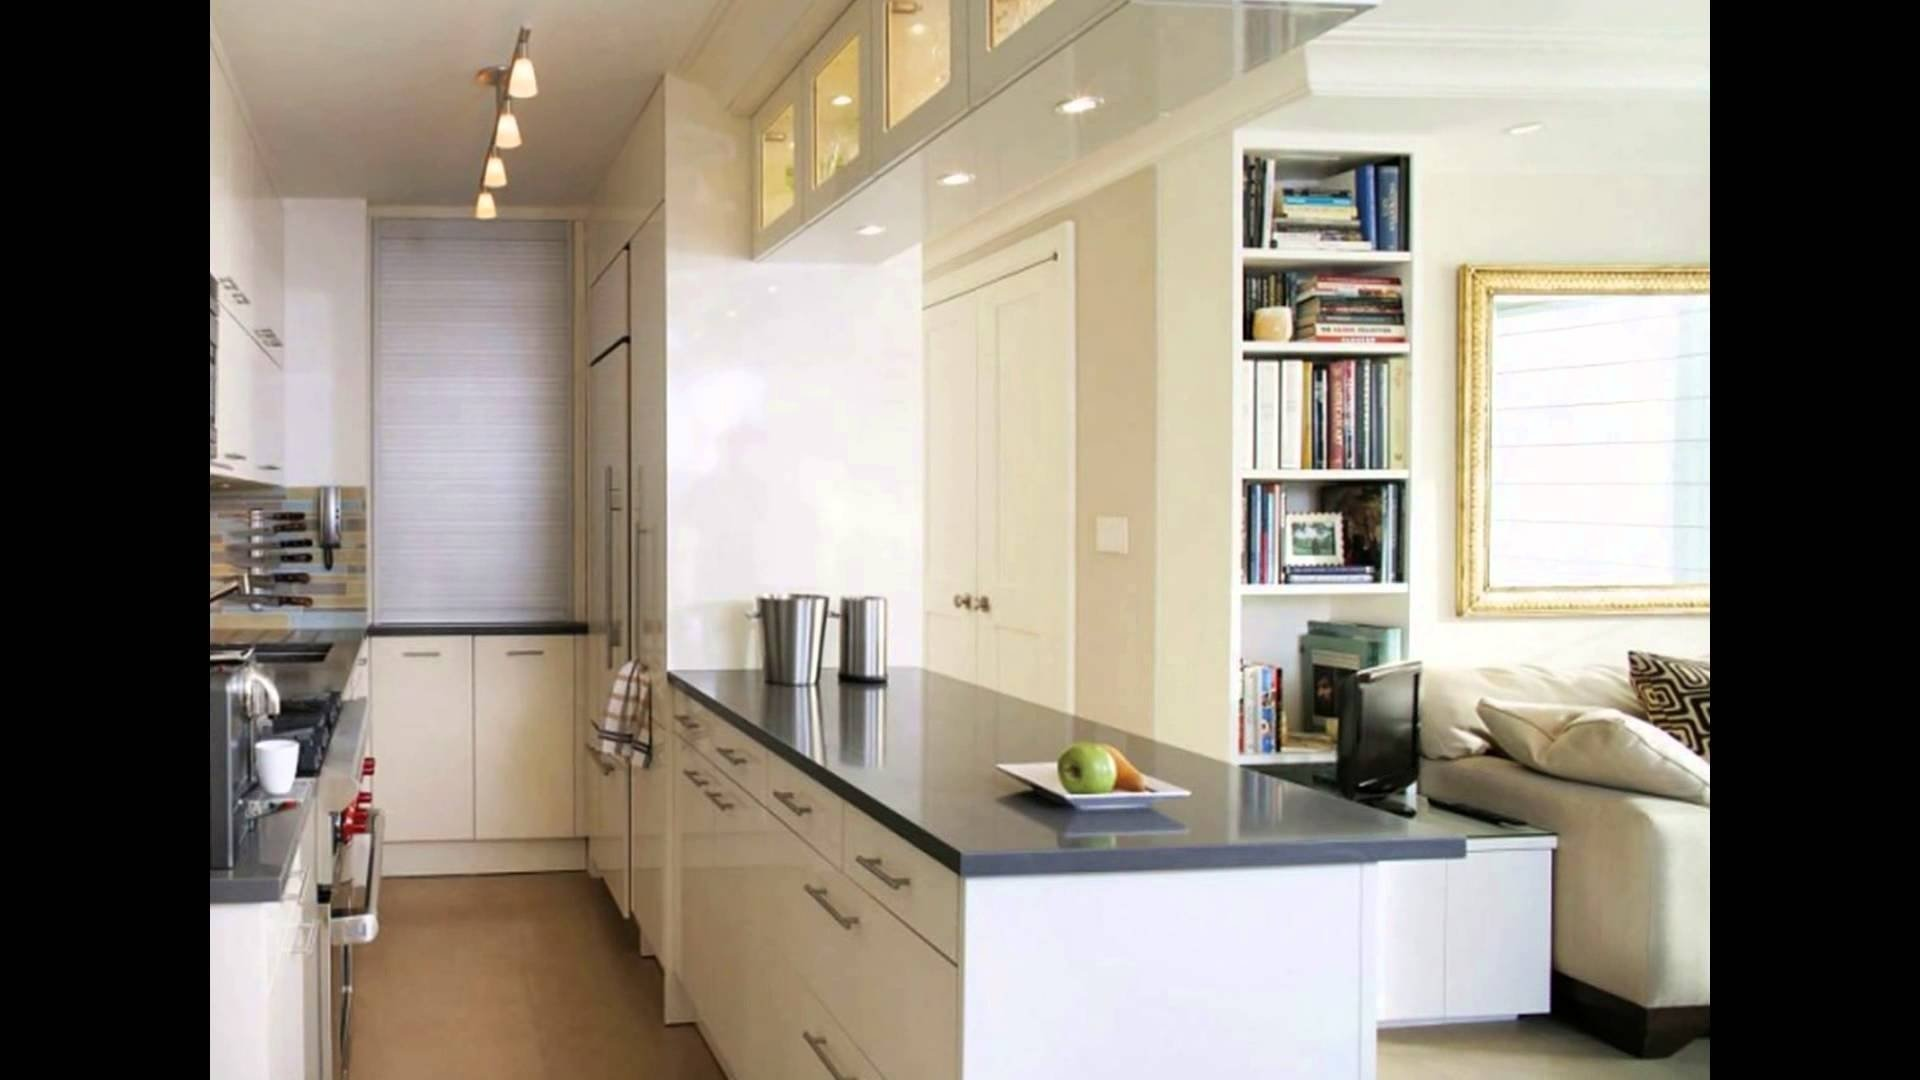 10 Awesome Small Kitchen Design Layout Ideas galley kitchen design small galley kitchen design youtube